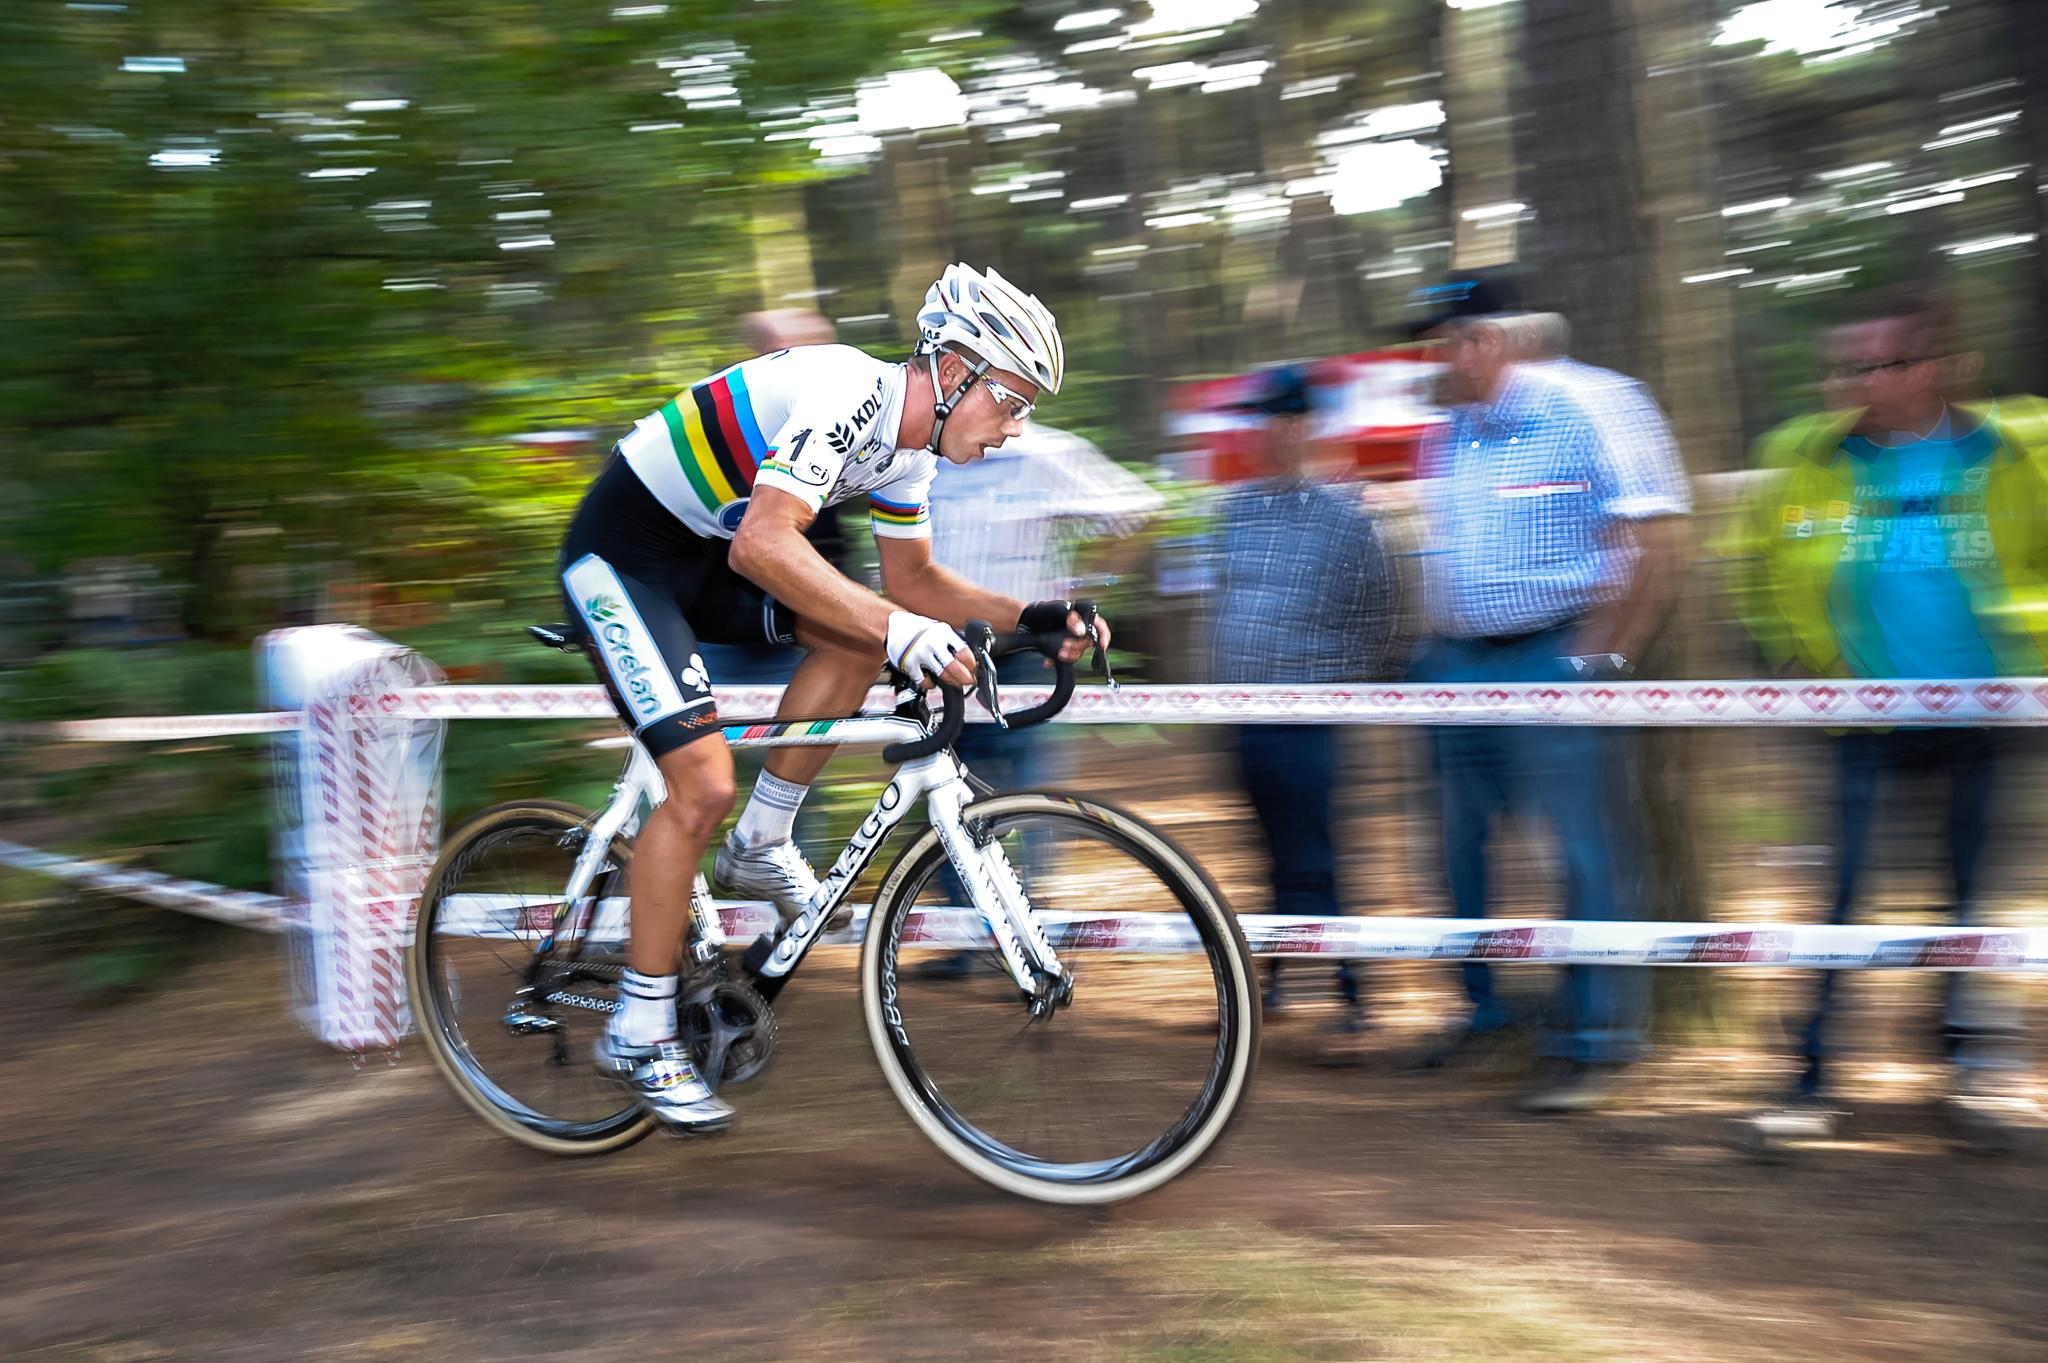 Sven Nys by Roland Pipeleers